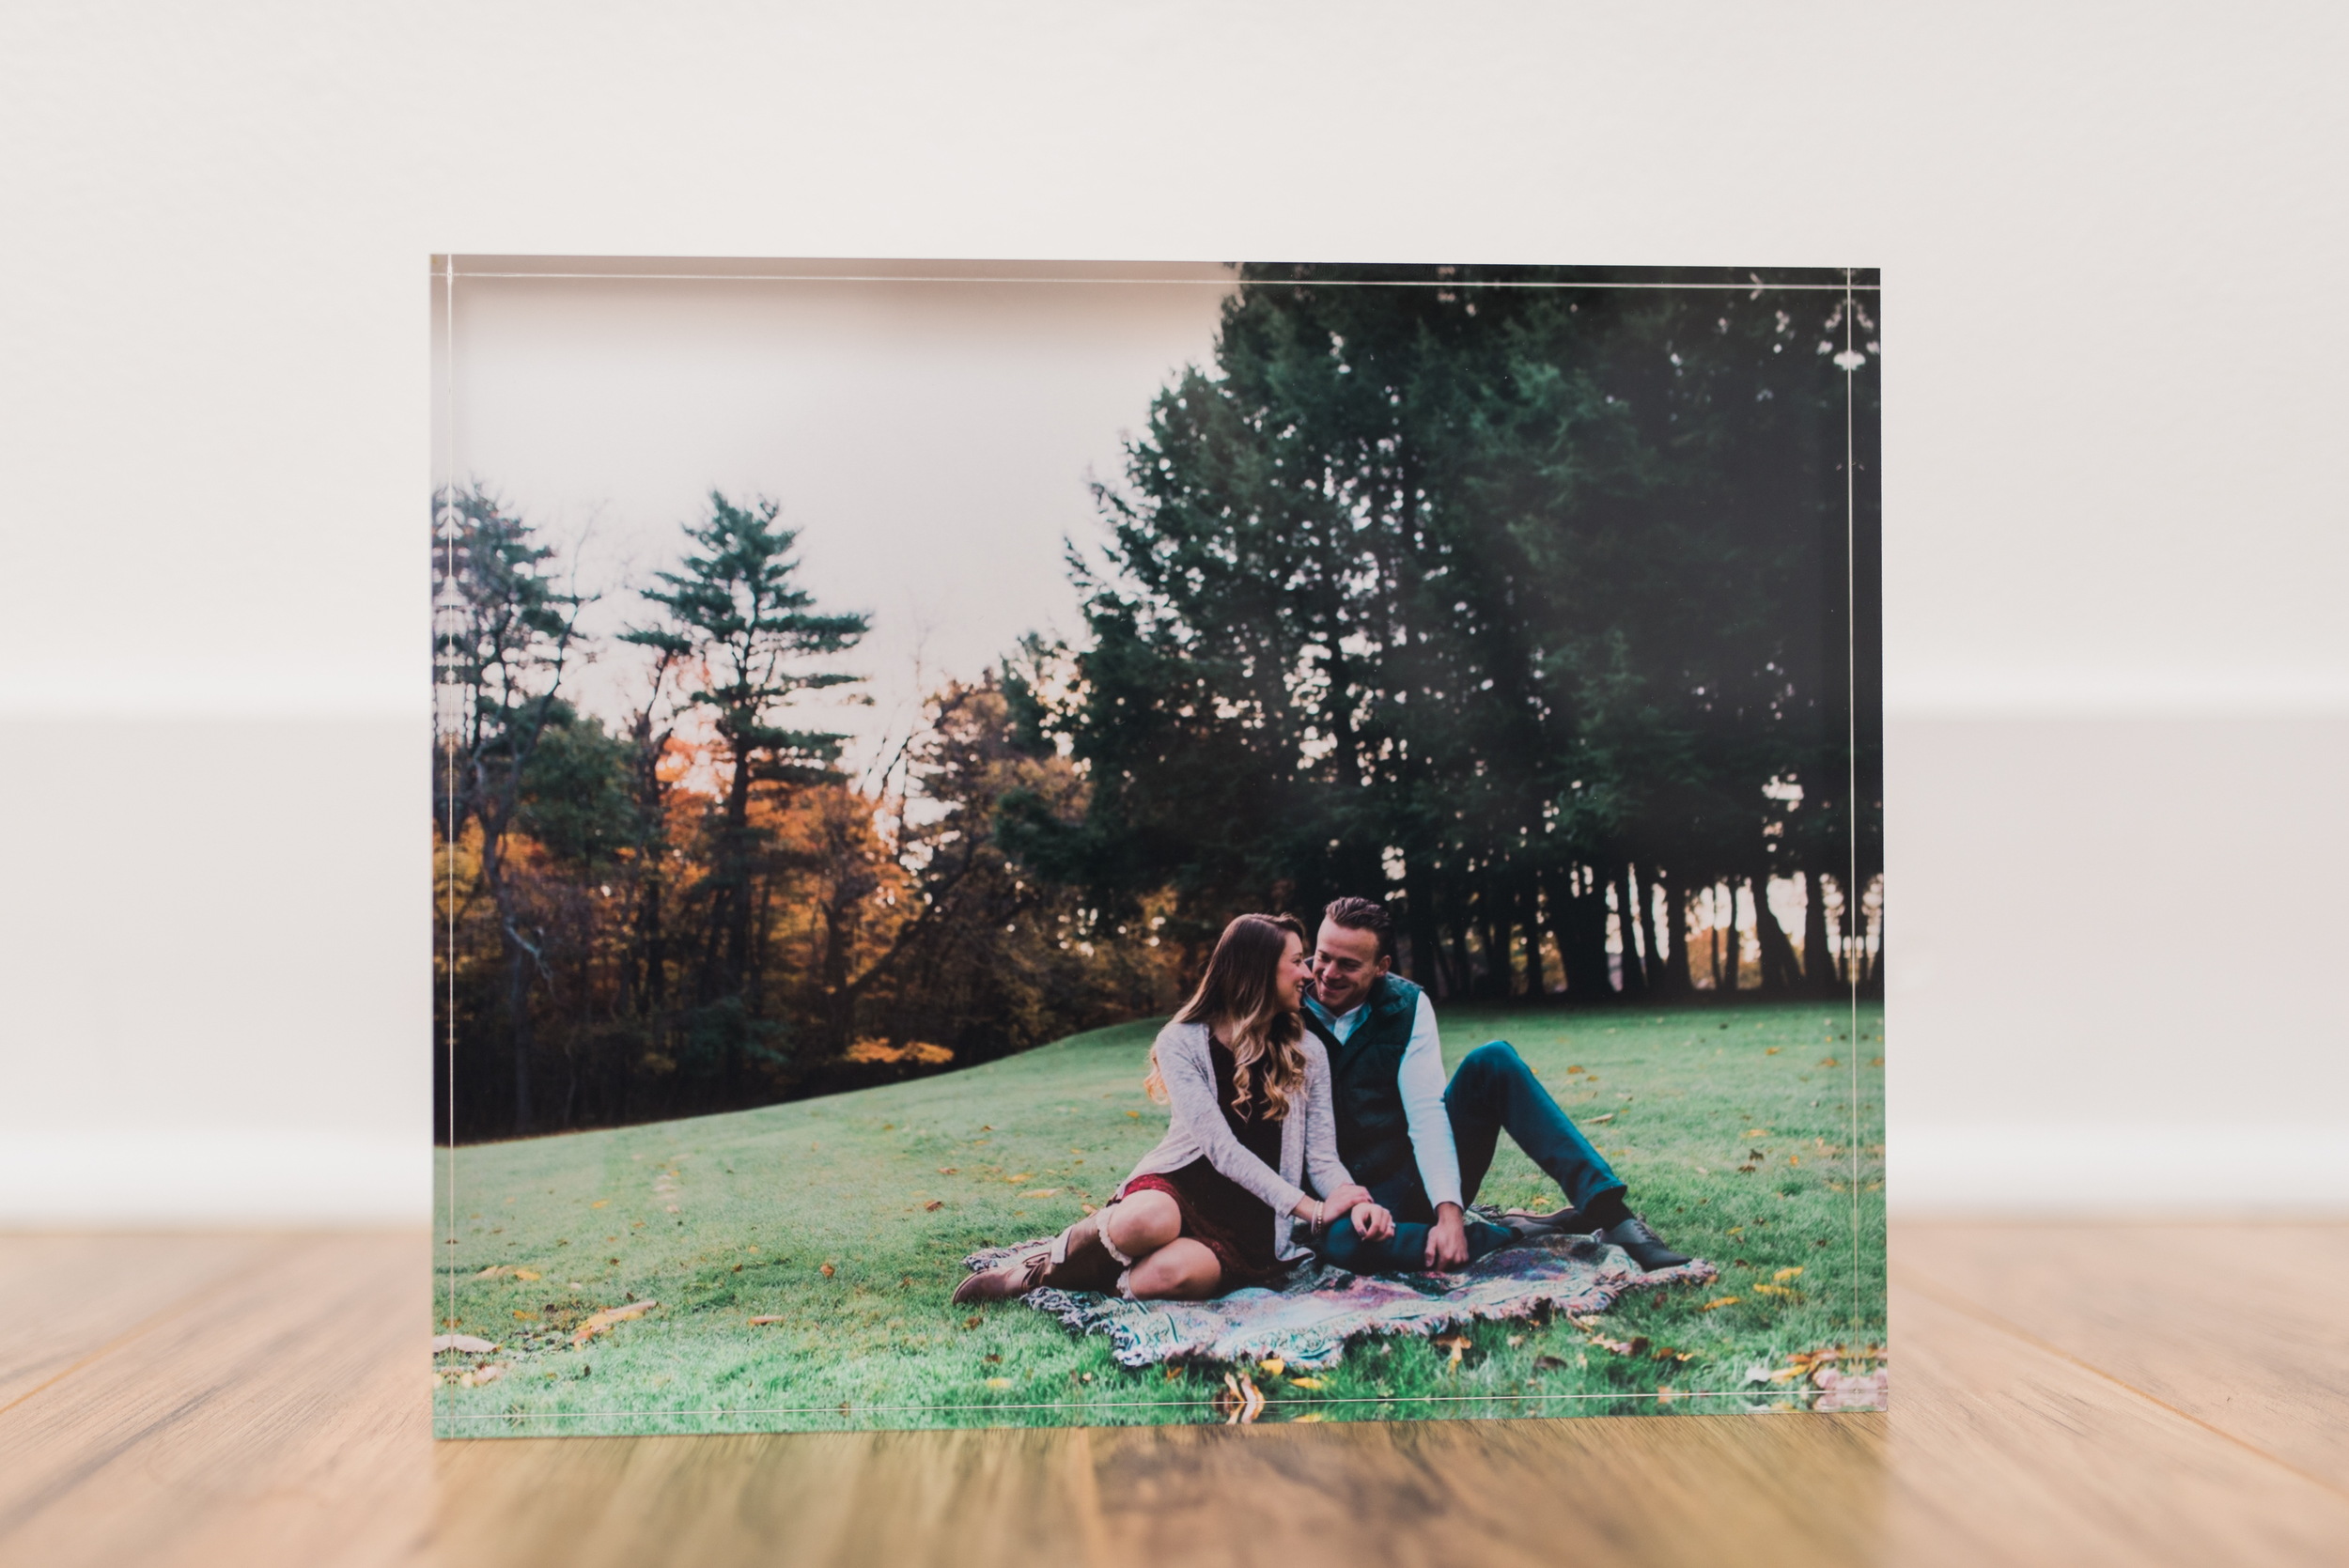 Pittsburgh Wedding and Portrait Photographer - Acrylic Block Fine Art Product